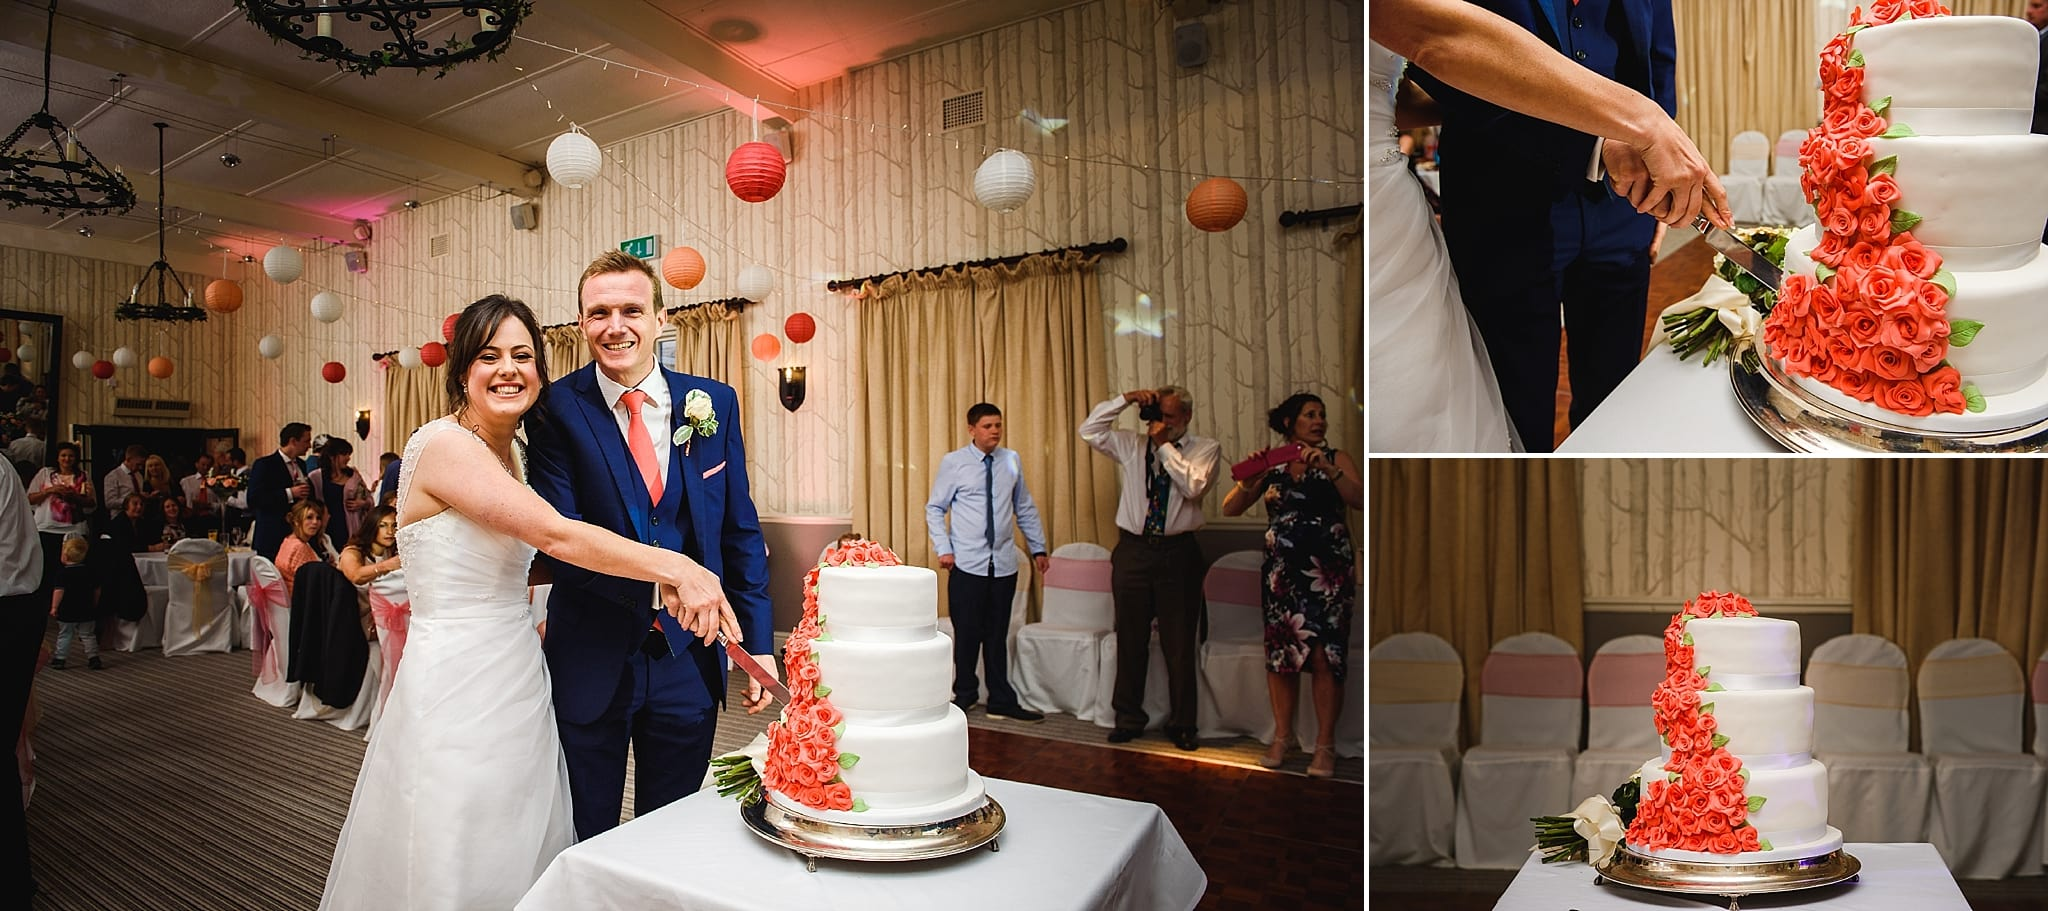 Bride and groom cut their wedding cake at the Hare and Hounds wedding venue